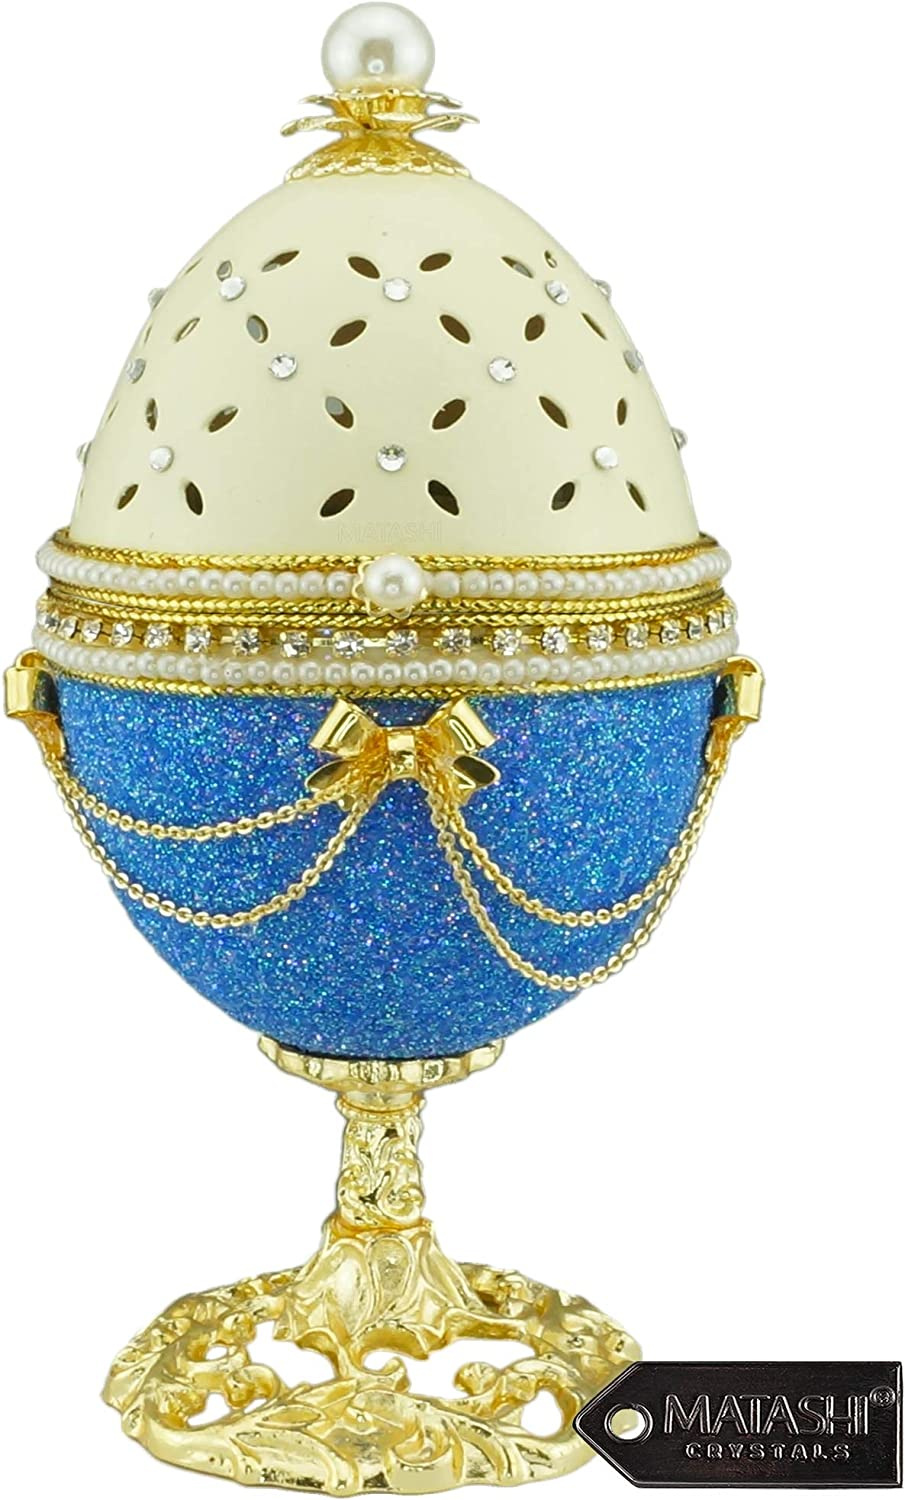 "Matashi Blue-Ivory Eggshell Trinket Music Box ""Fur Elise"" with Crystals and Pearls Faberge Egg Table Top Ornament Decorative Gold Finish Home Decor for Living Room Bedrooms Gift for Christmas Birthday"